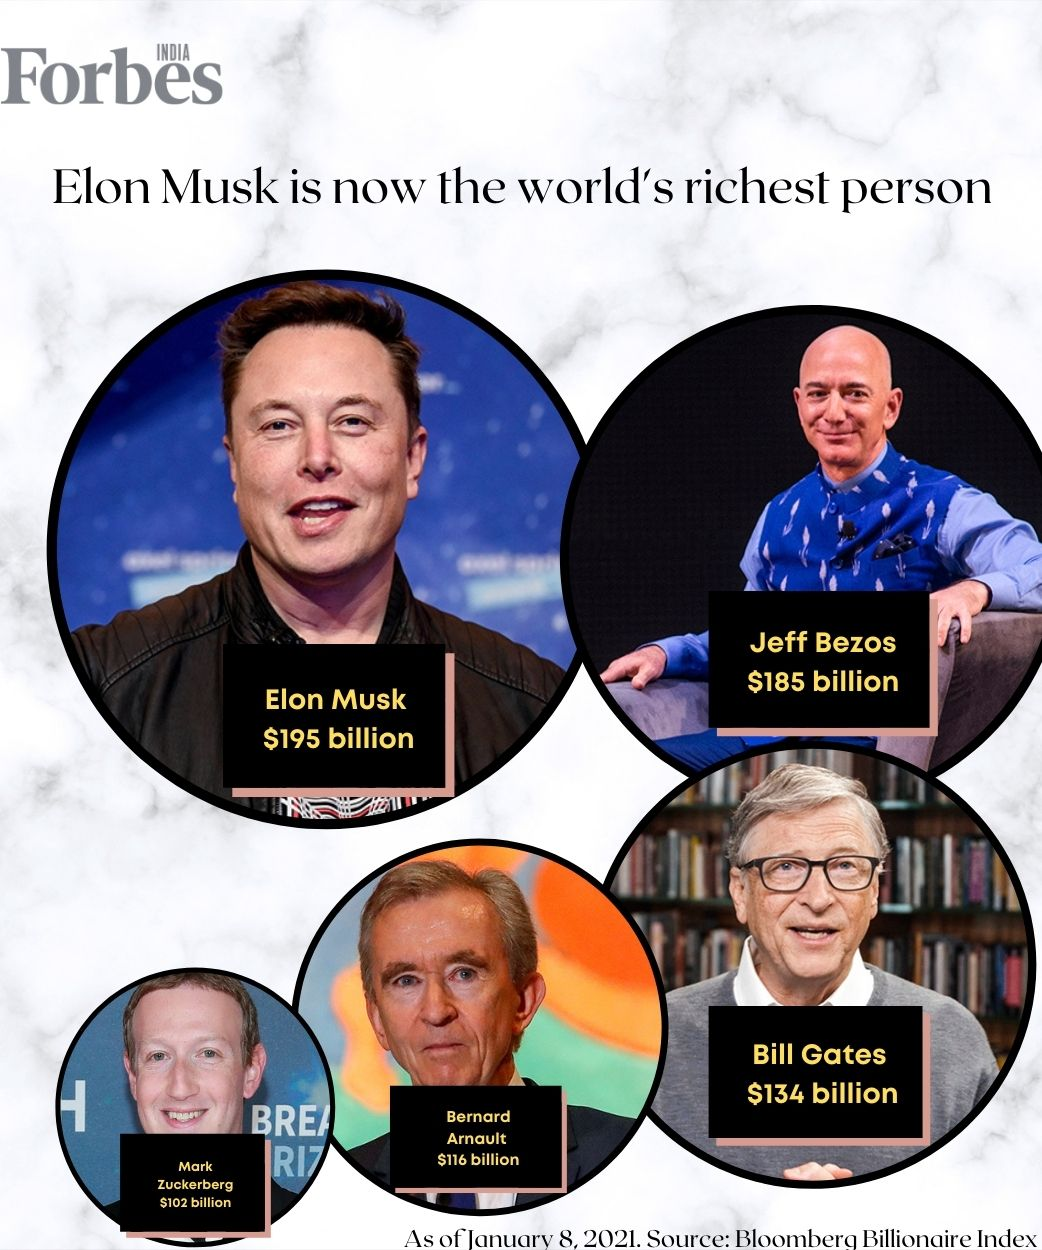 elon musk the richest person in the world